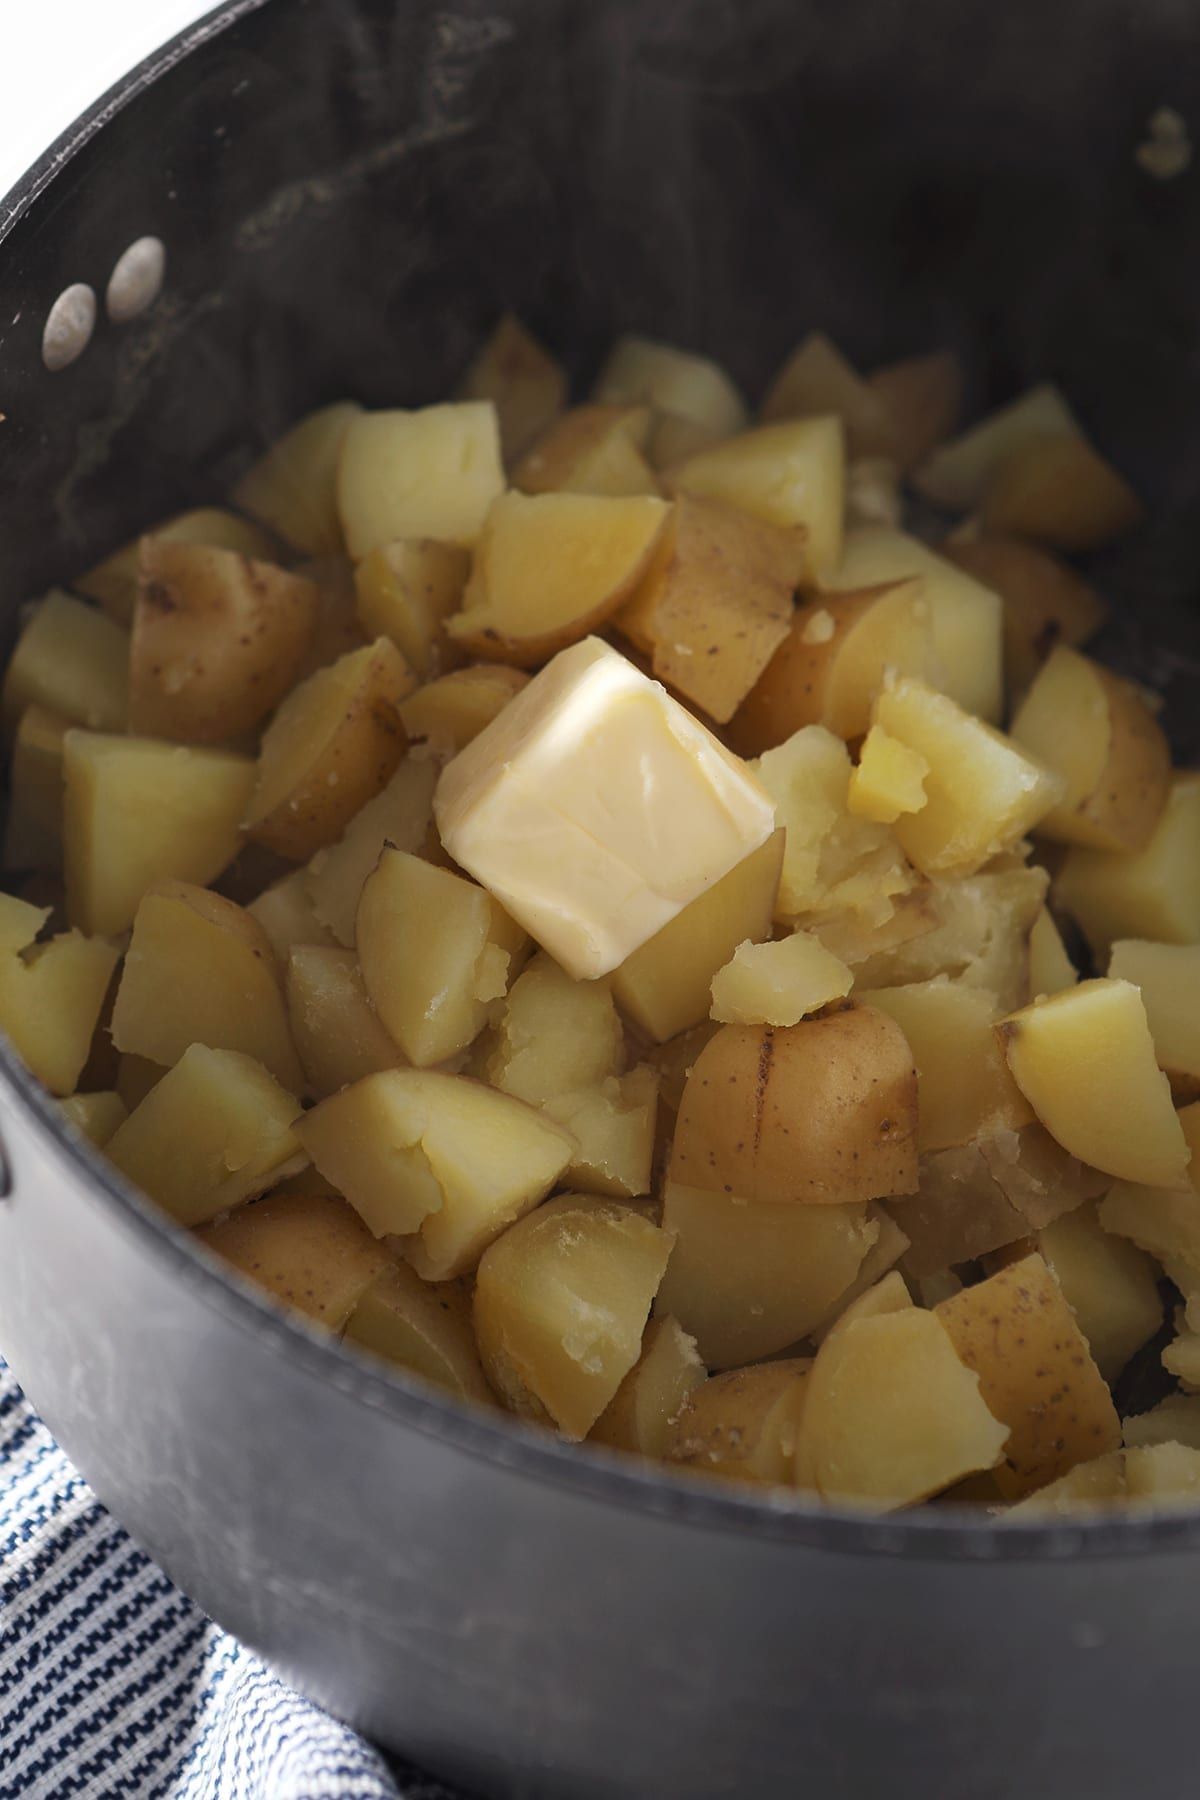 Butter sits on top of boiled potatoes